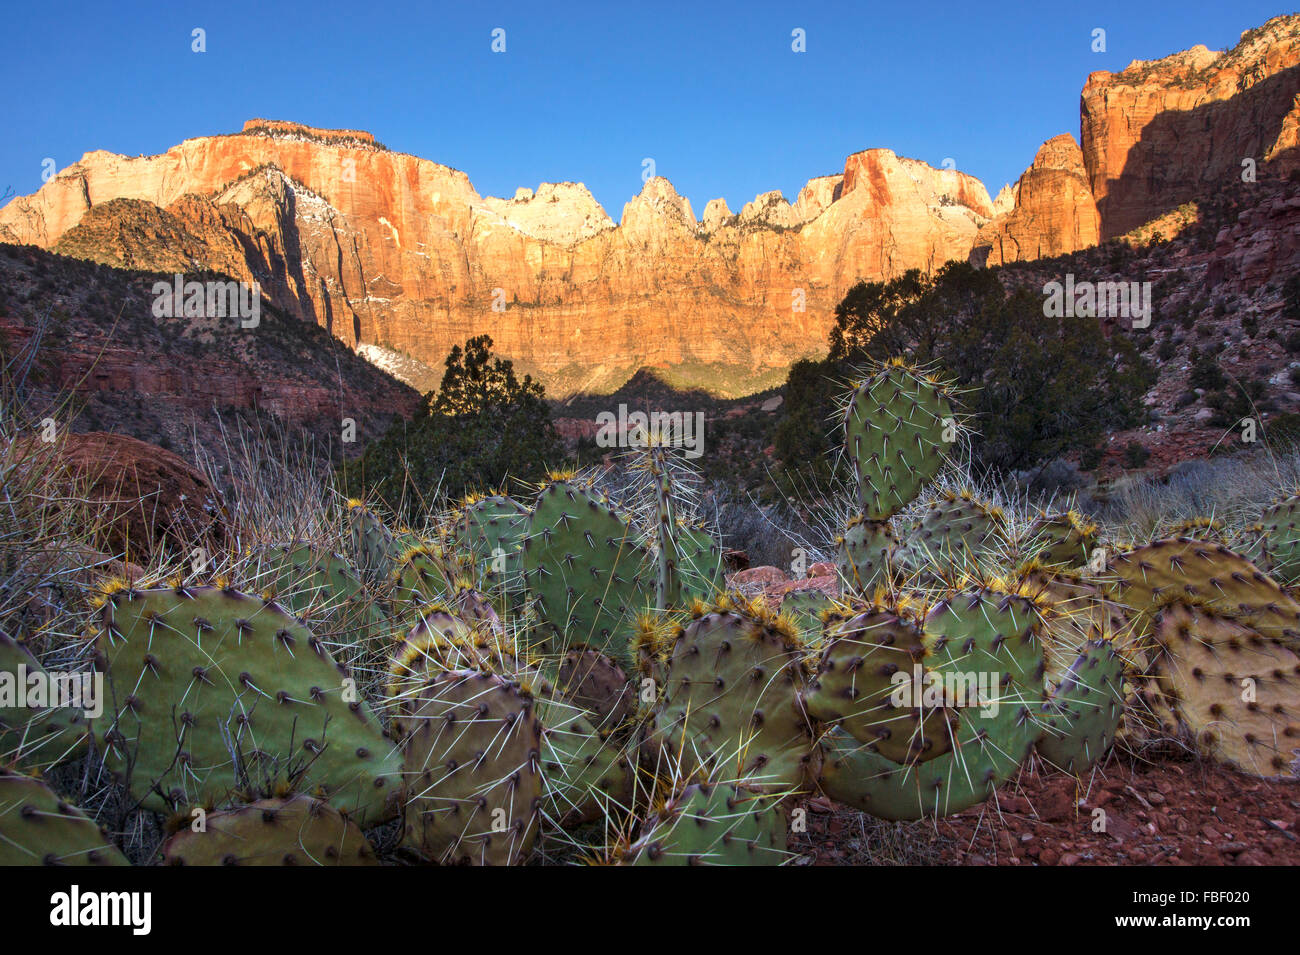 Cactus and mountains Zion National Park - Stock Image